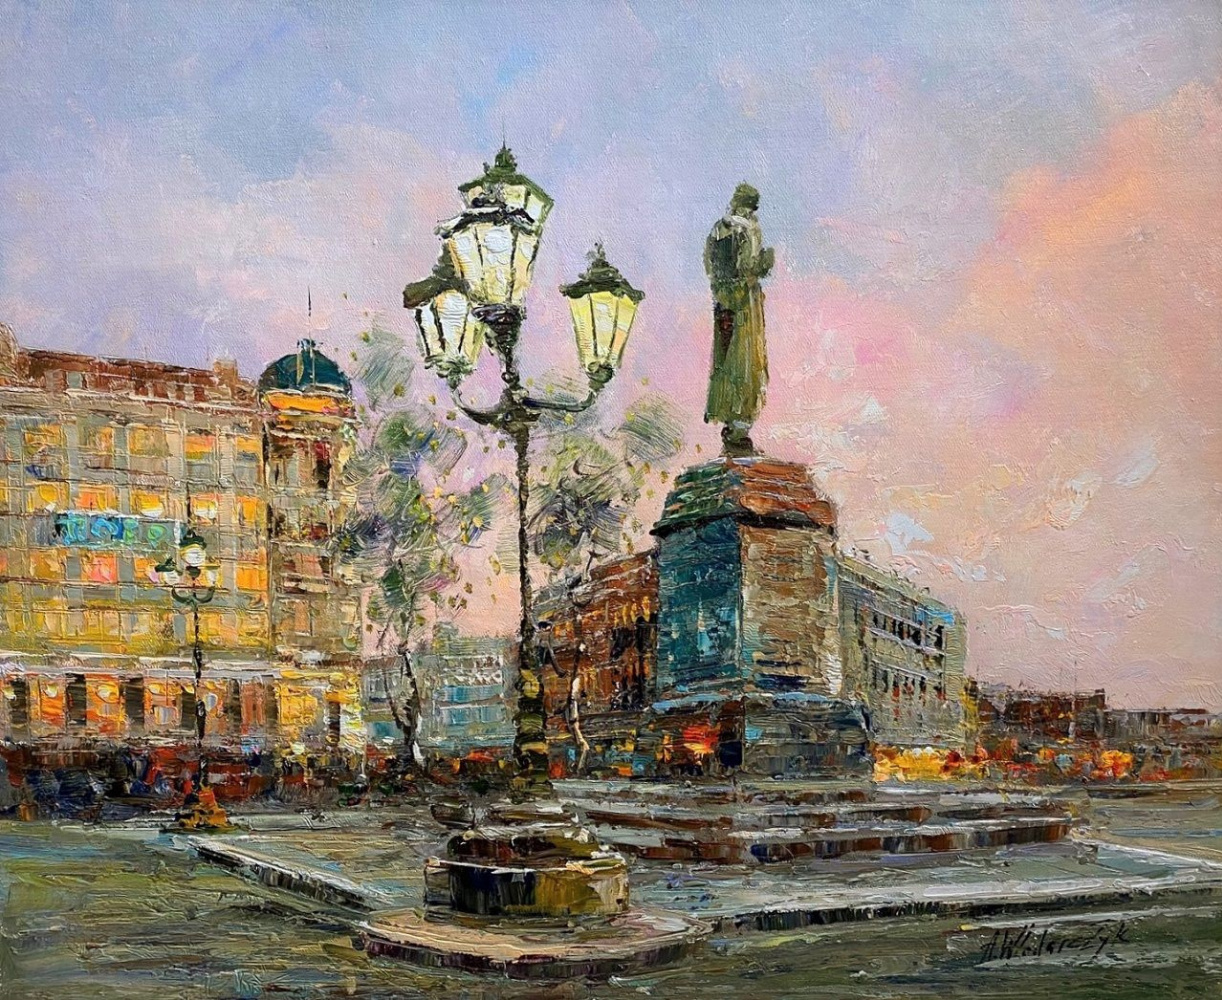 Andrzej Vlodarczyk. Walks in Moscow. View of the monument to A.S. Pushkin